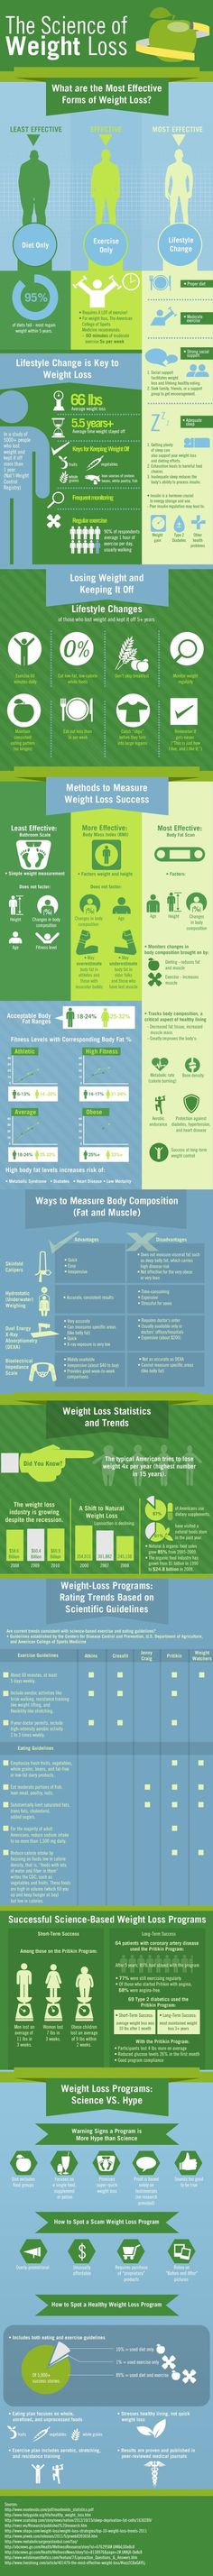 Losing weight doesn't have to be an overly complicated endeavor, but it does require a basic understanding of how diet, exercise, and lifestyle are related. In this infographic, learn about the actual science that is behind effective weight loss. #weightlossrecipes